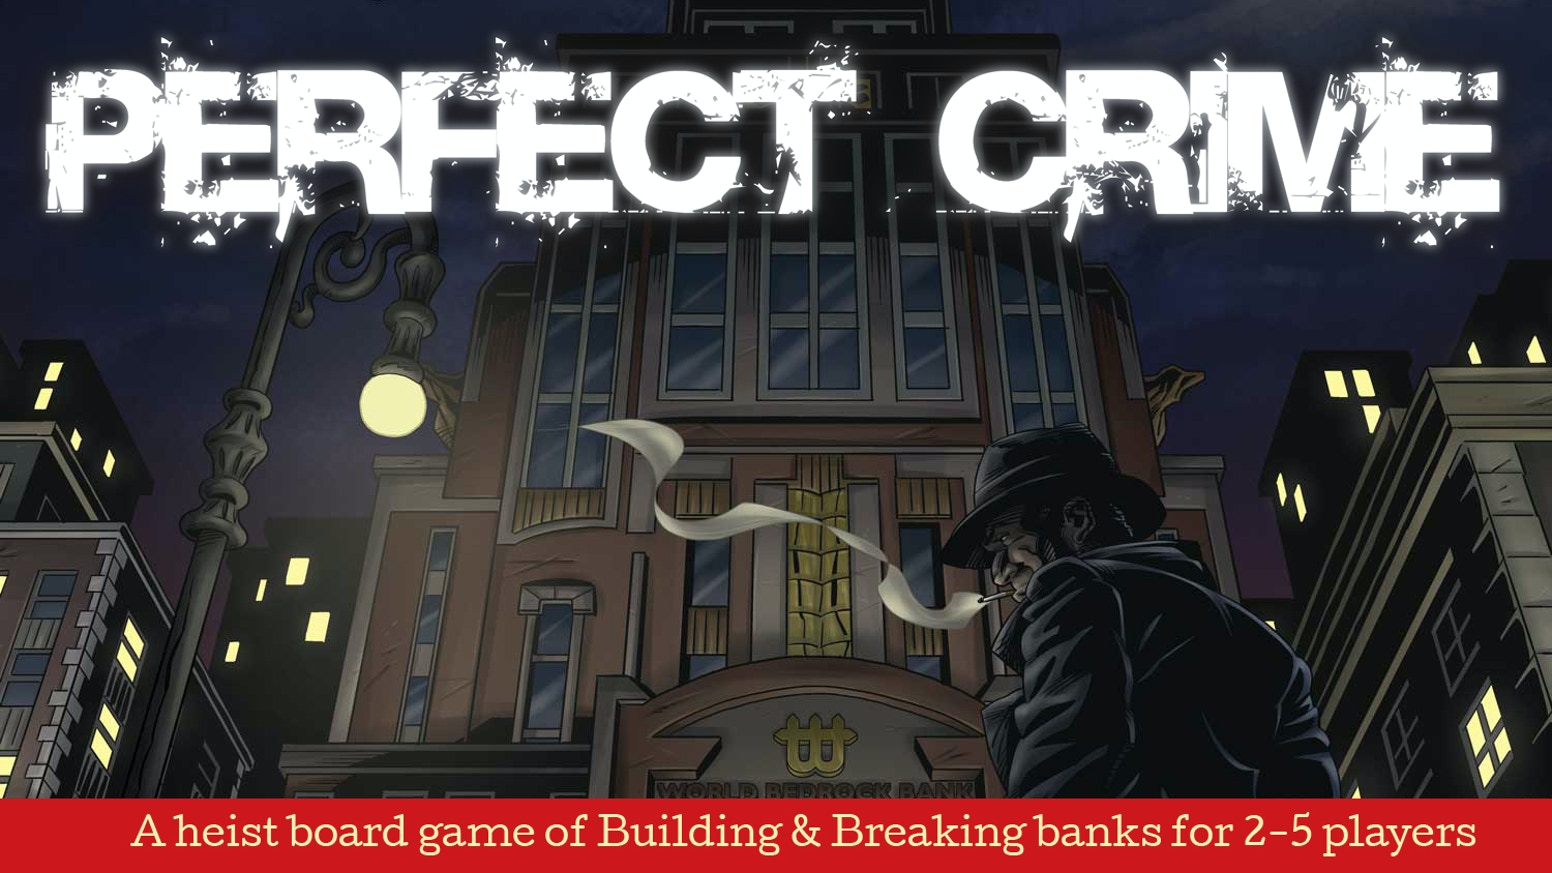 - 1 vs Many - Modular - Asymmetrical Perfect Crime is a 1 vs. many game of building and breaking banks set in the modern day. It's tense, it's gritty, it's multilayered and it's as authentic to real life bank robberies as we're allowed to make it.